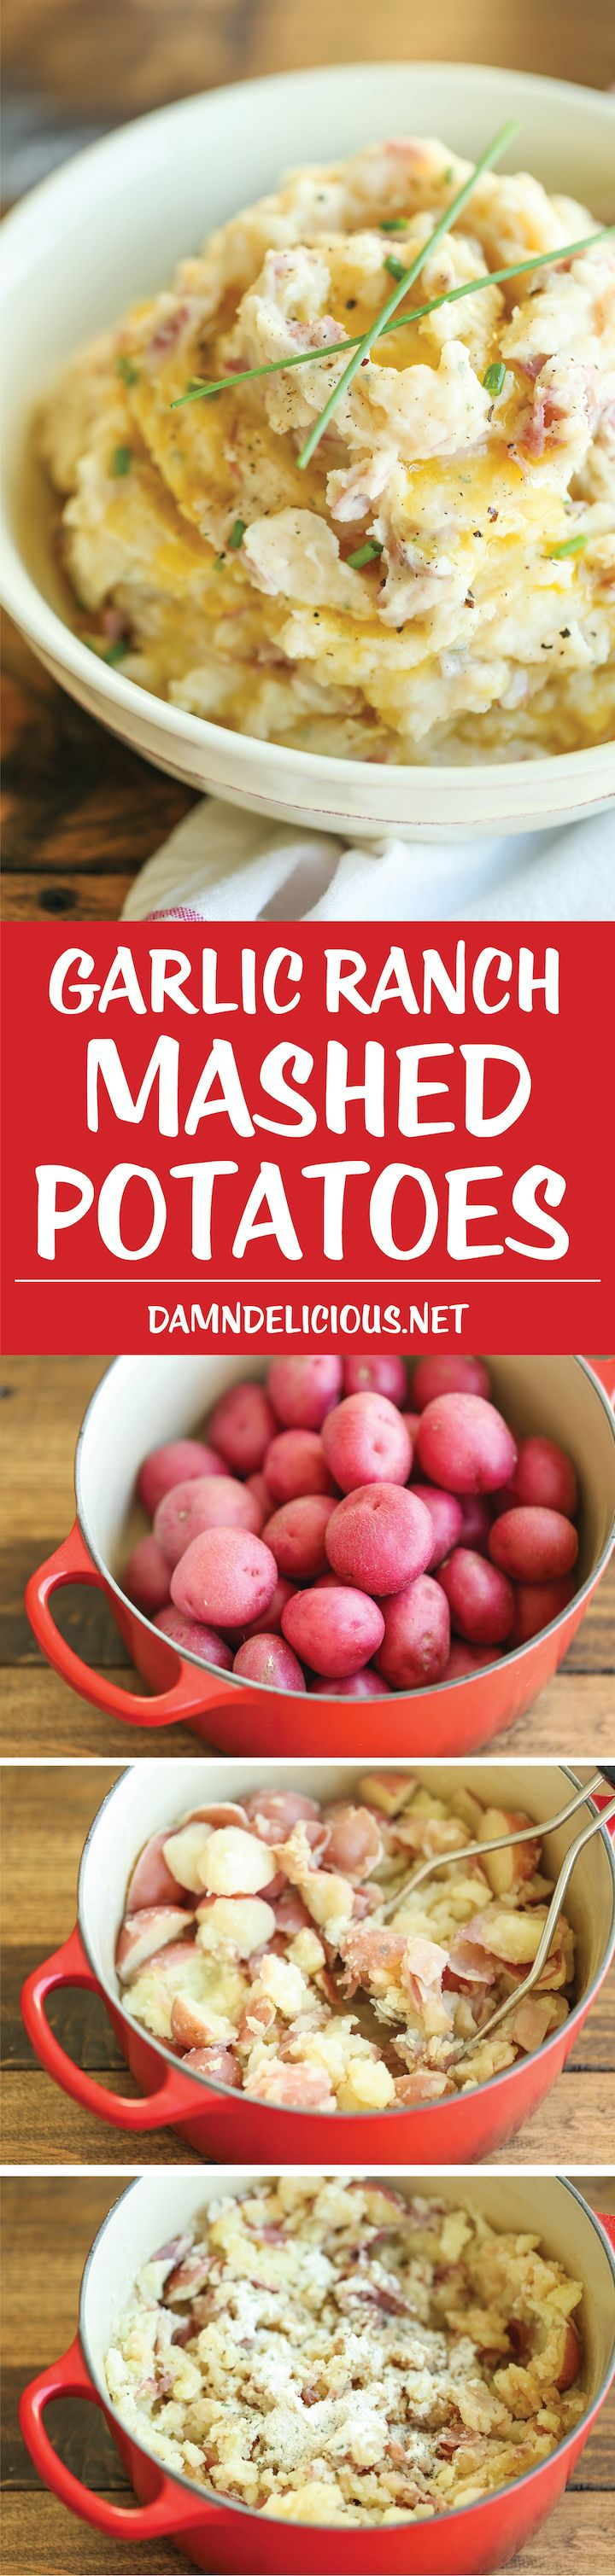 Garlic Ranch Mashed Potatoes - All you need are 5 ingredients and 10 minutes prep for the BEST and EASIEST homemade mashed potatoes! This is my favorite mashed potatoes recipe ever!